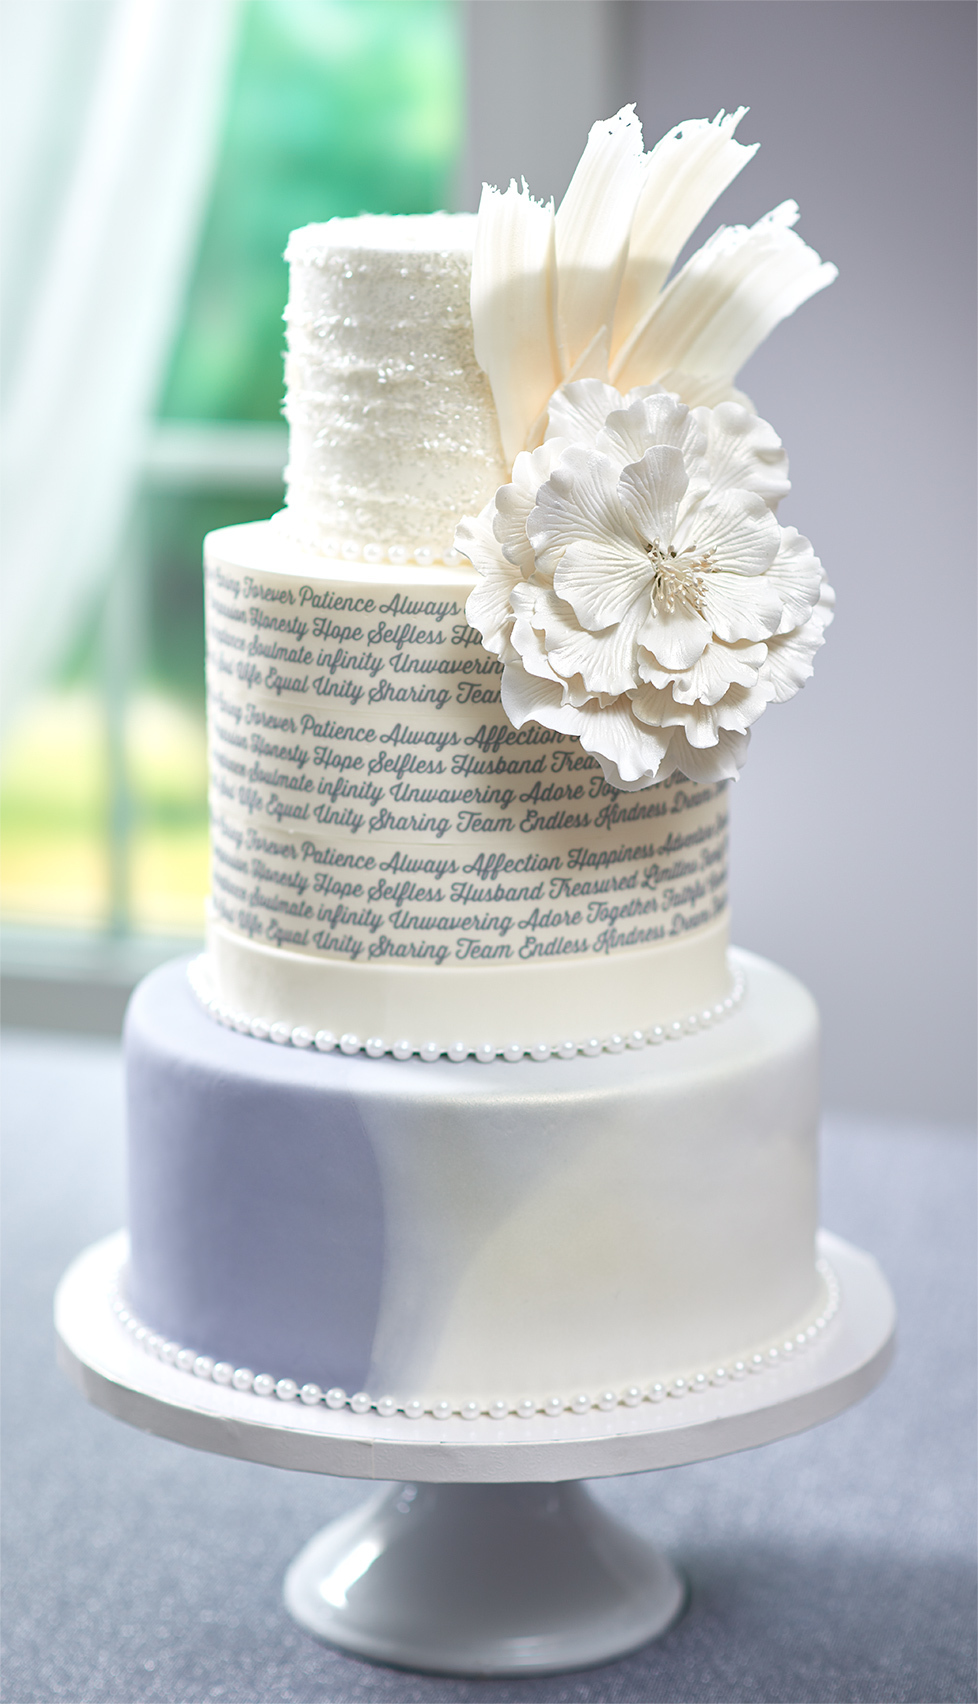 Top Pinterest Cake Trends For The Bakery Decopac